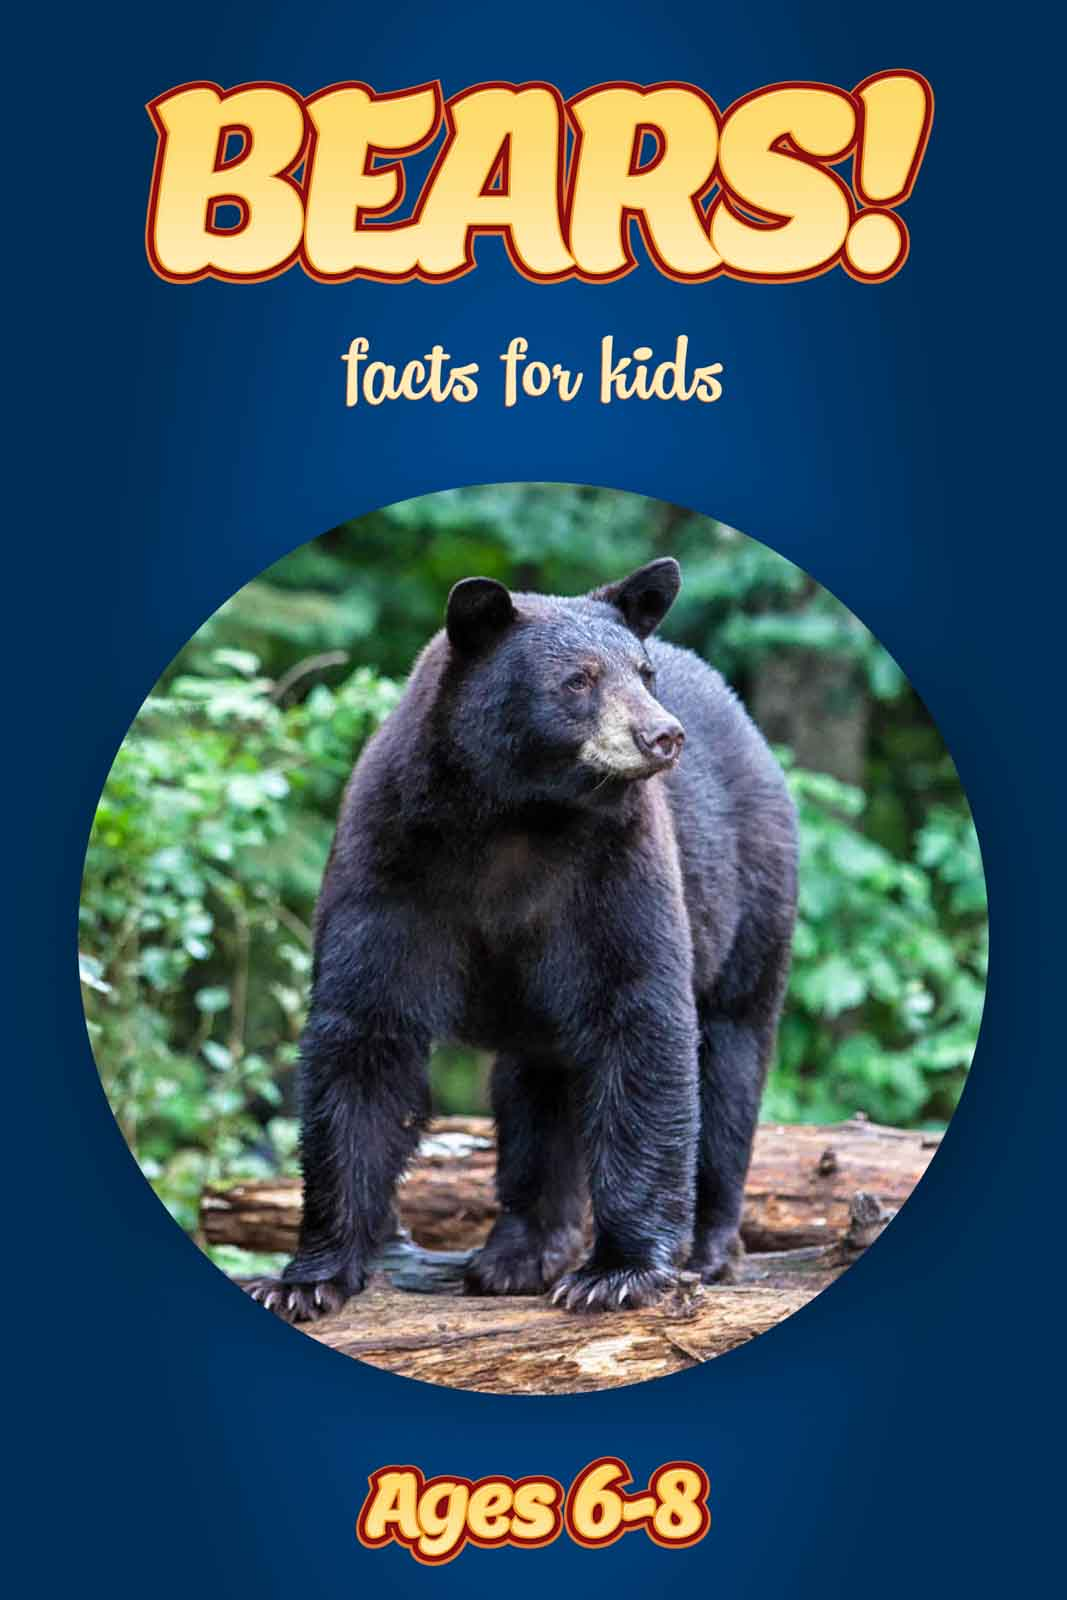 bear facts for kids kids nonfiction book clouducated ages 6 8